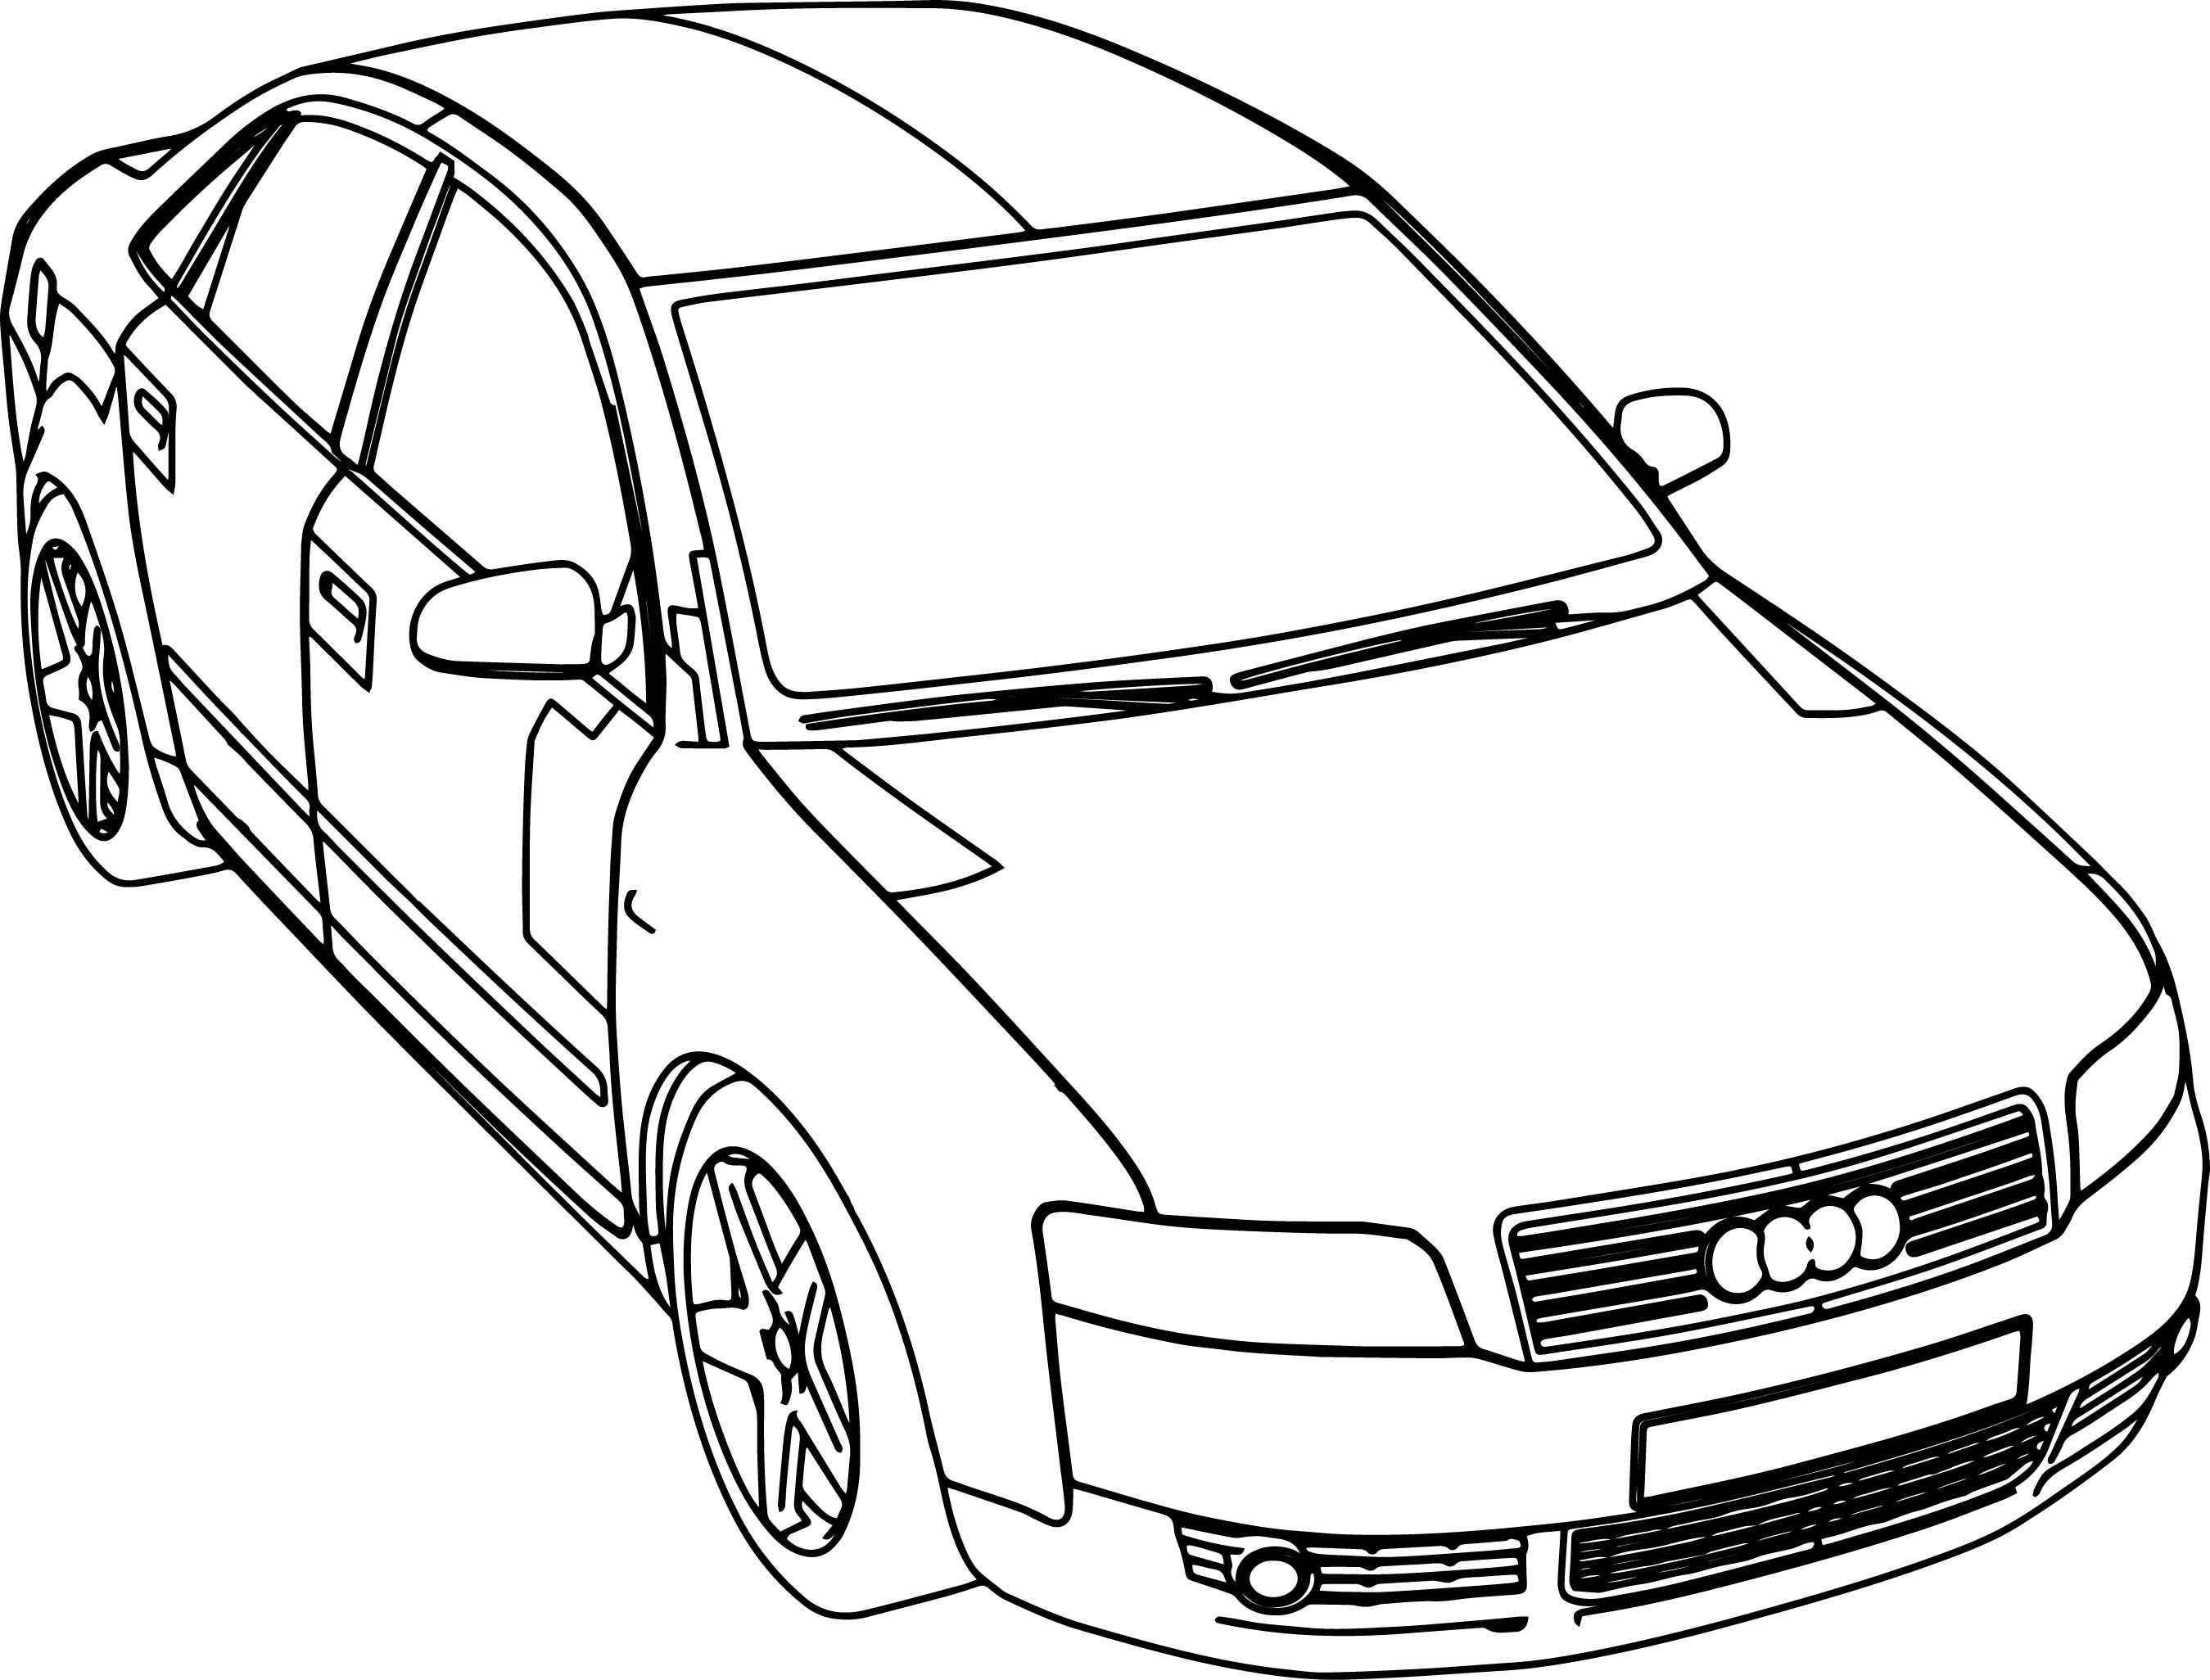 audi coloring pages 17 free sports car coloring pages for kids save print pages coloring audi